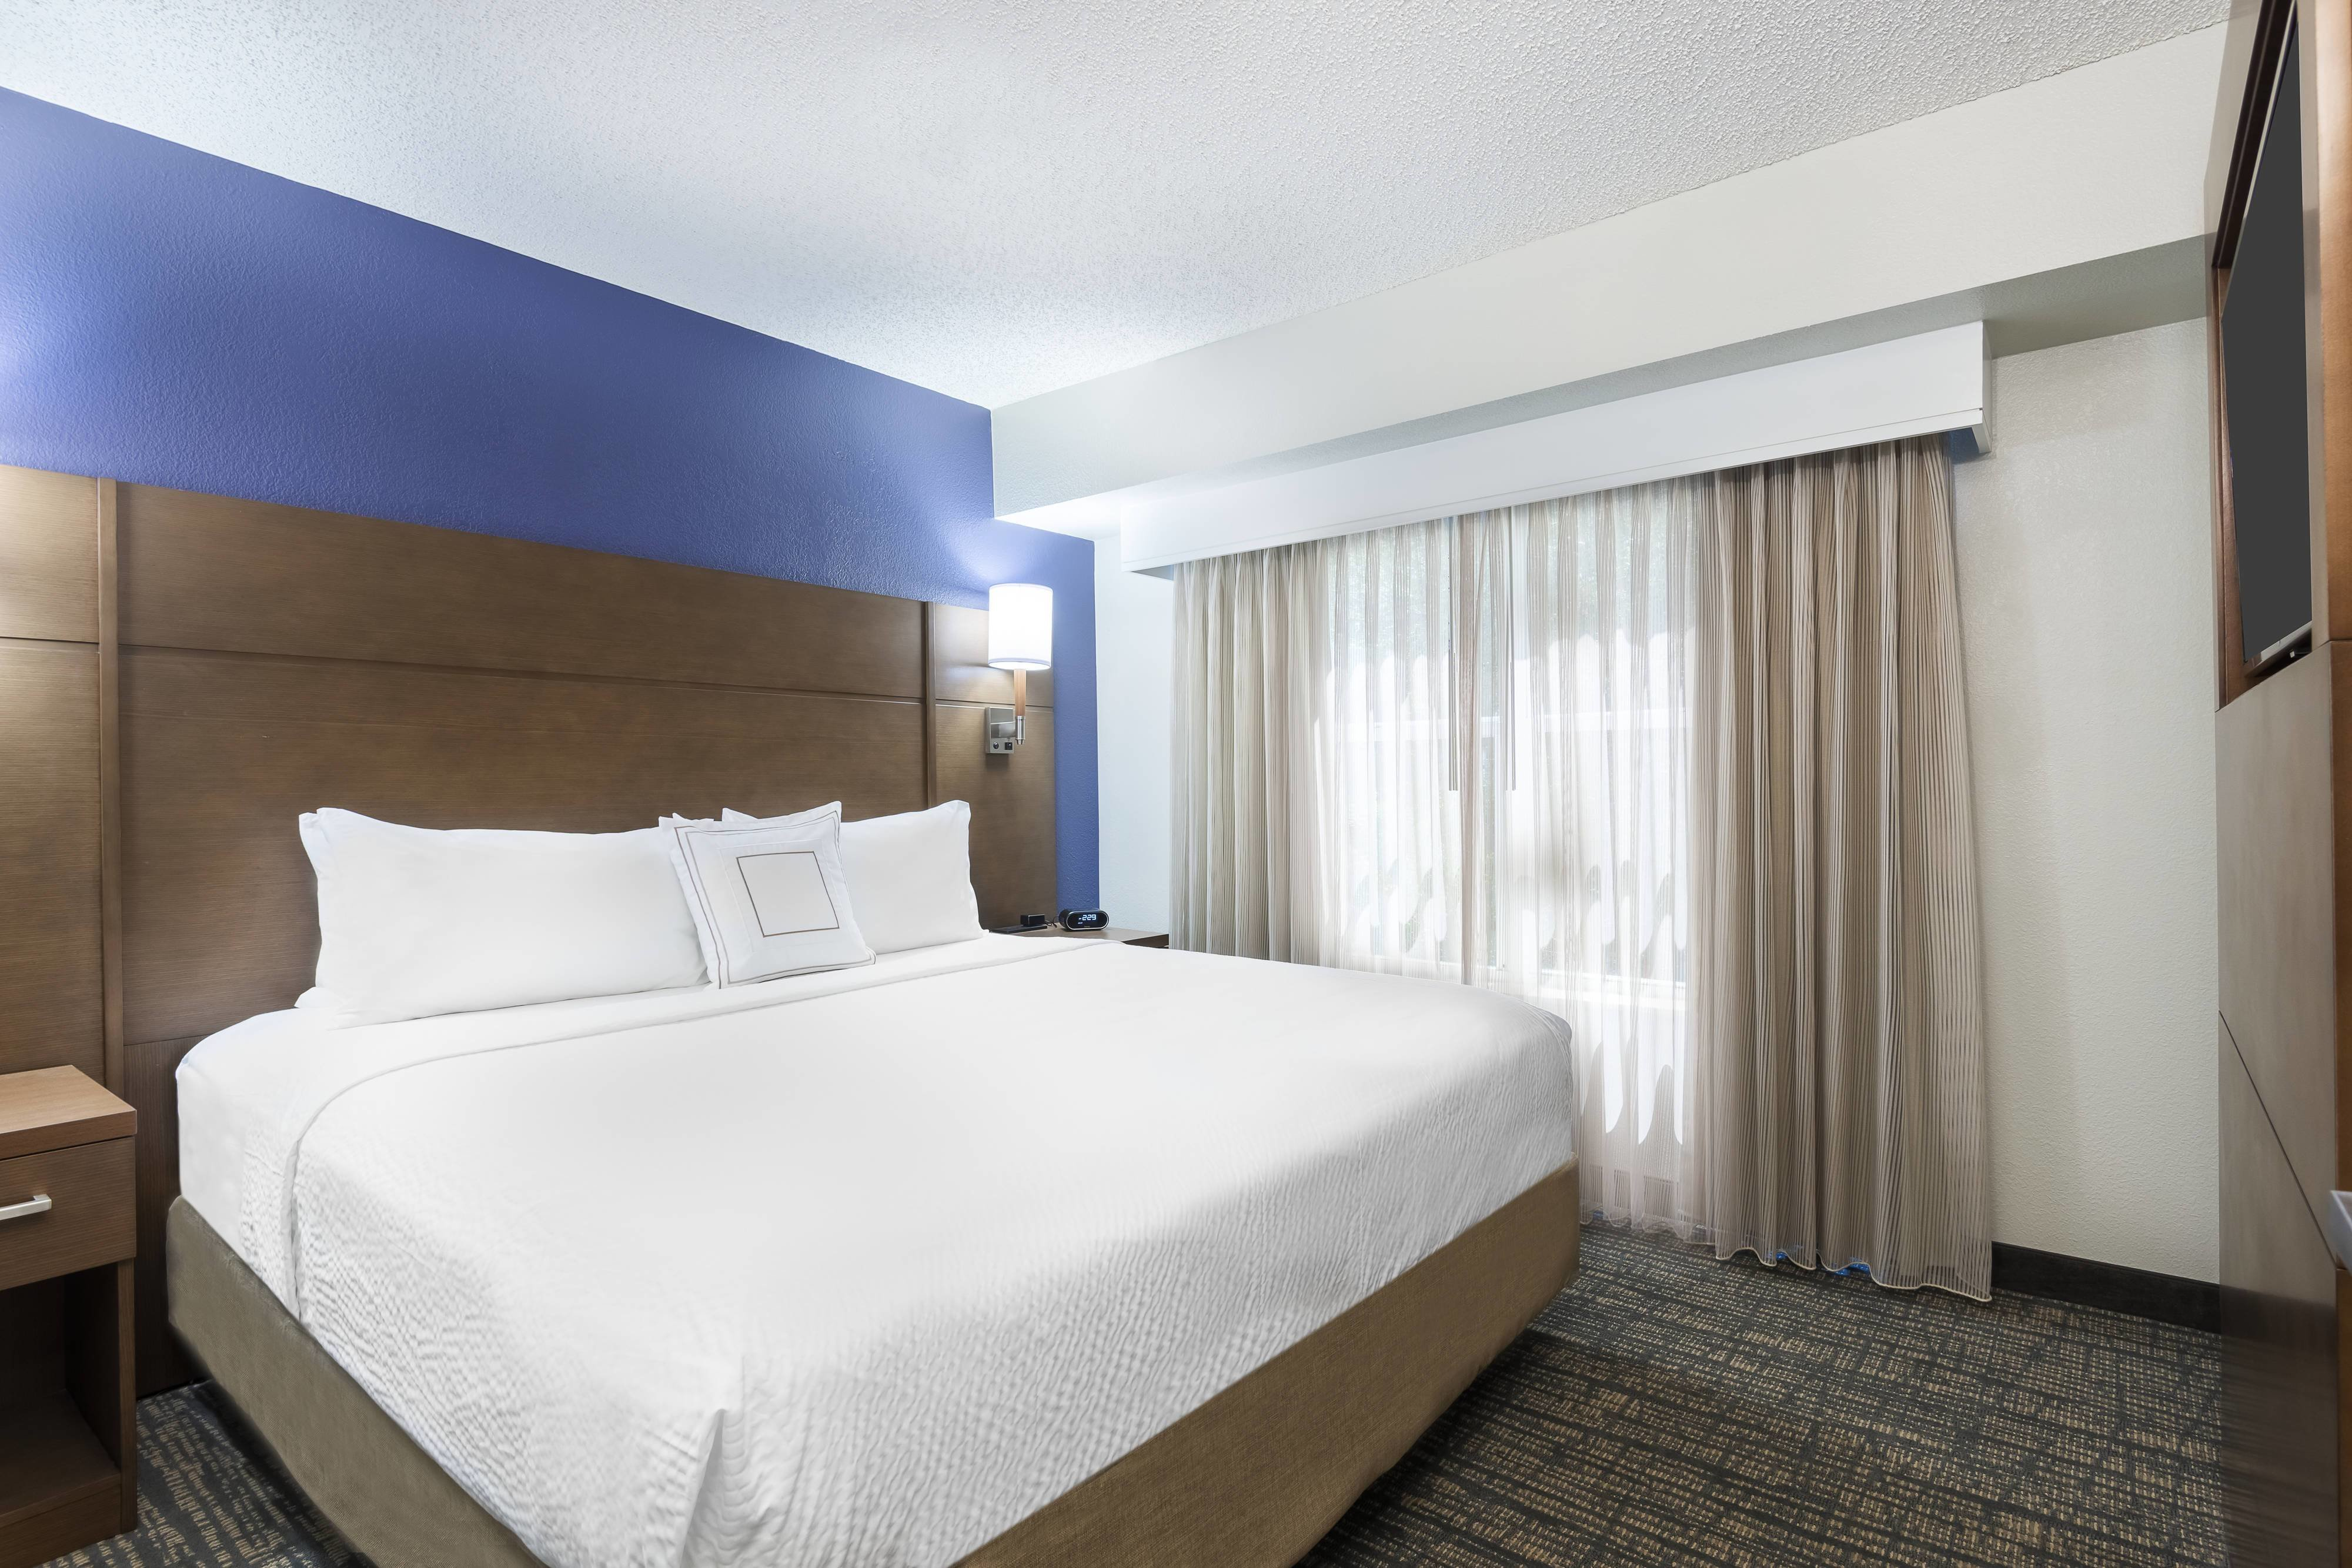 Best Hotels Near Usf Residence Inn Tampa North I 75 Fletcher With Pictures